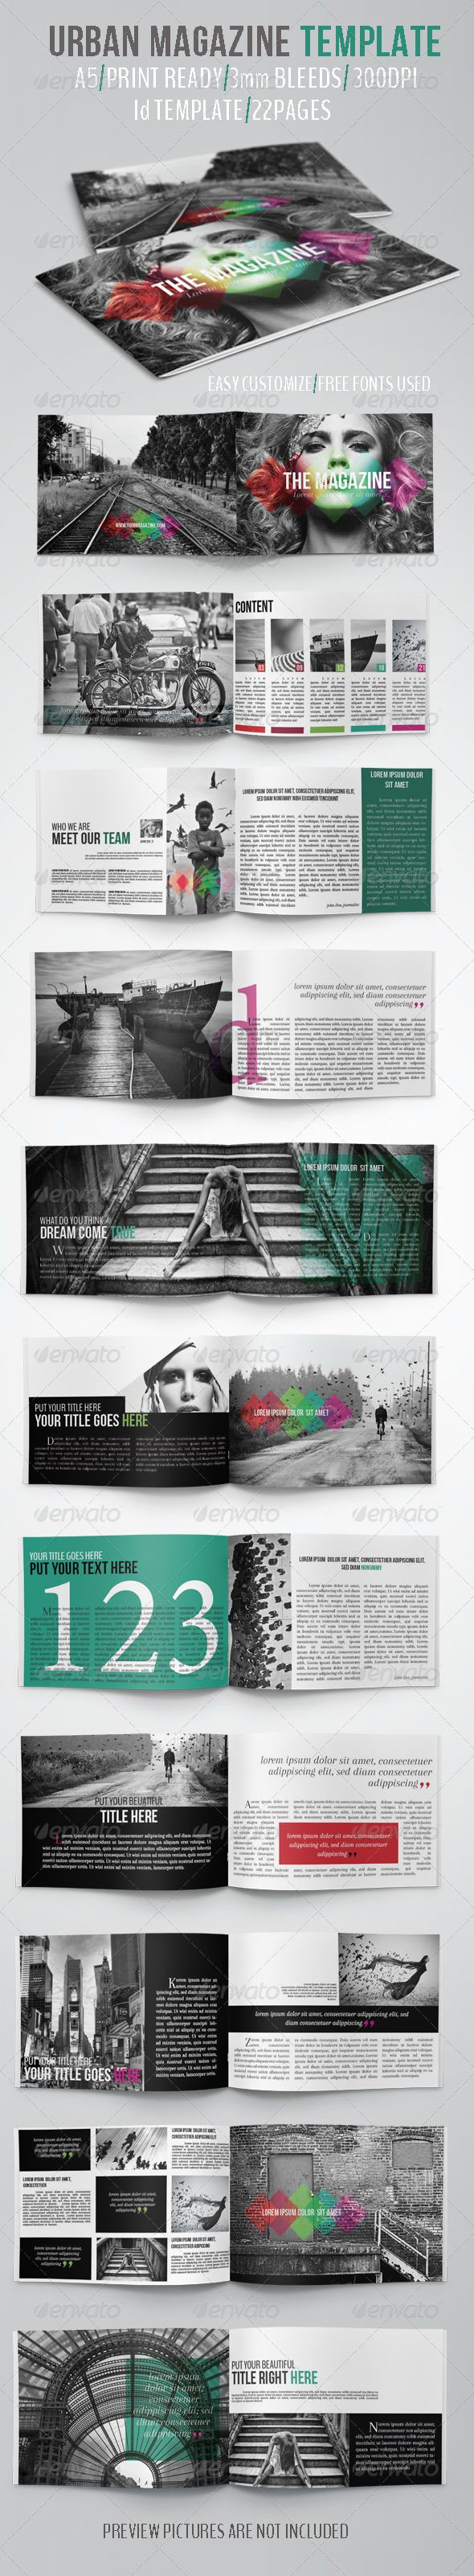 Urban Magazine Template  — InDesign Template #urban #modern • Download ➝ https://graphicriver.net/item/urban-magazine-template/5162870?ref=pxcr